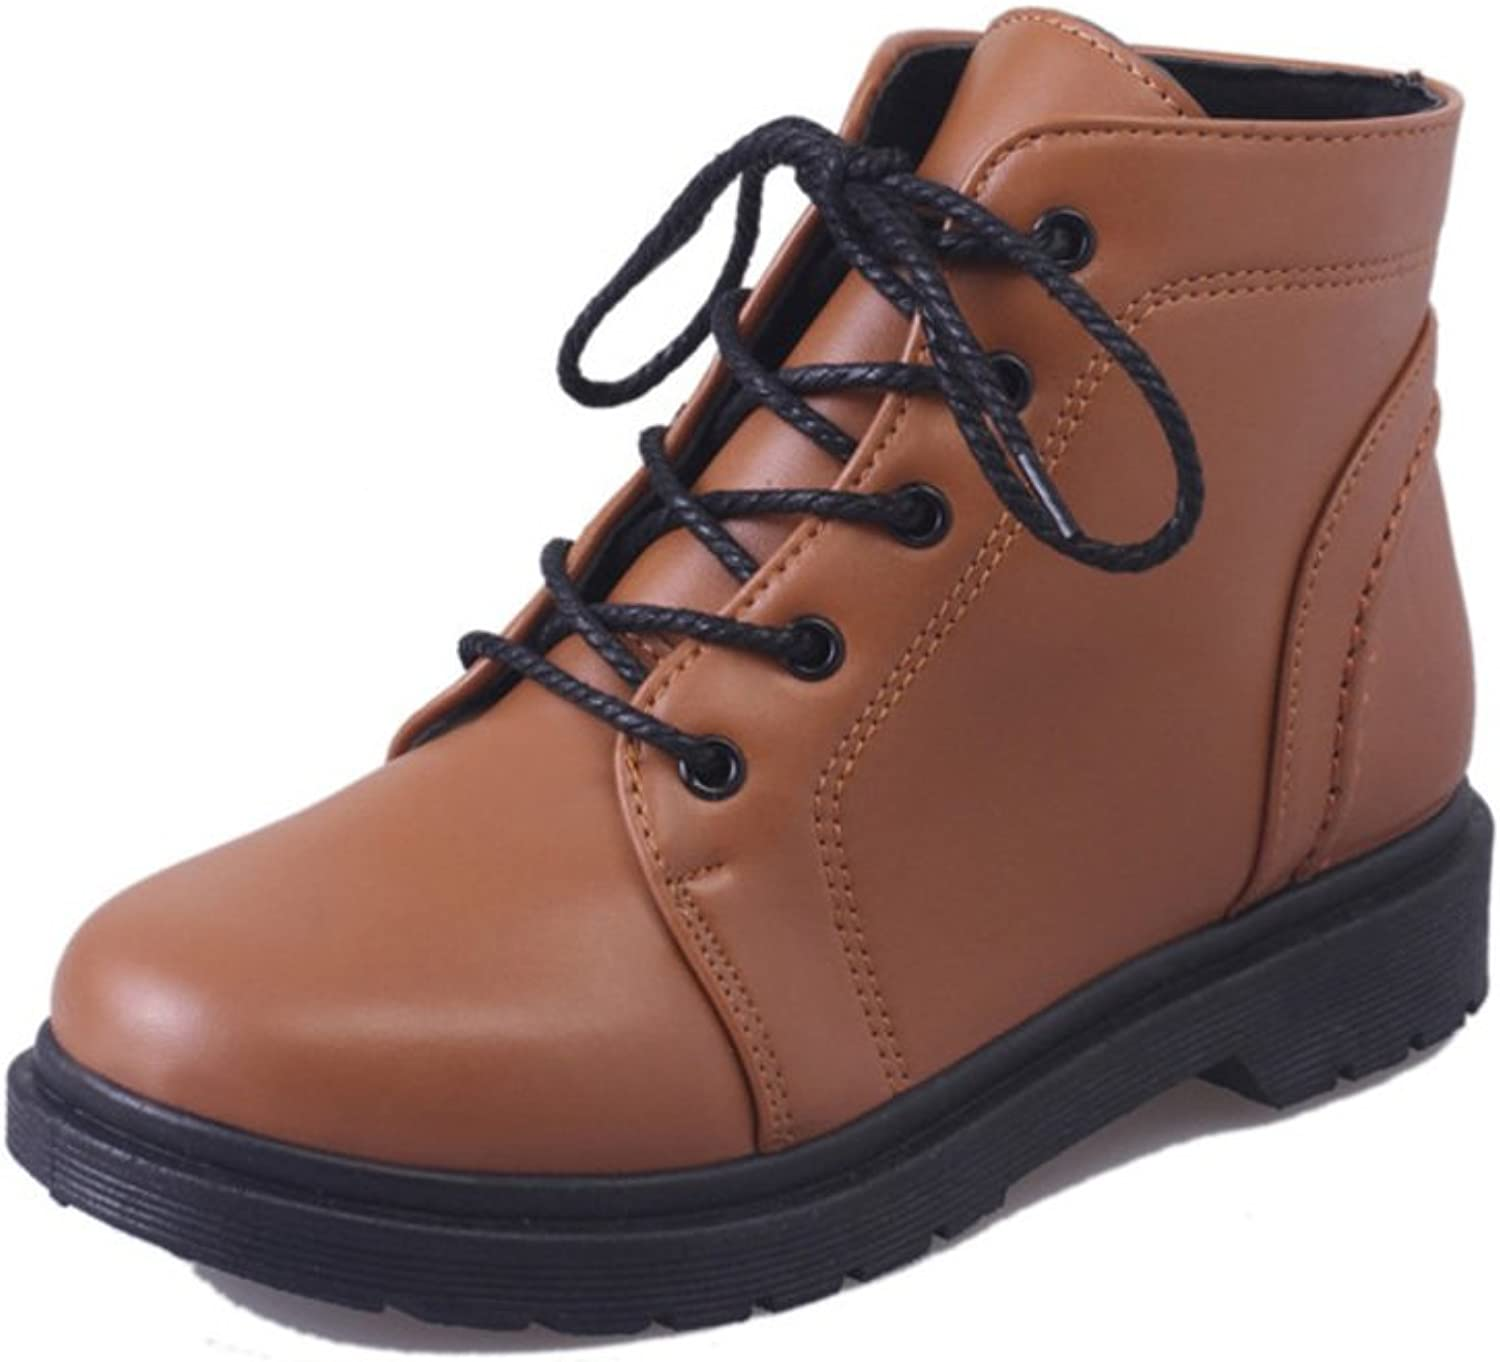 Huhuj Europe England Wind Boots Retro Front Strap Flat Boots Martin Boots and Cotton